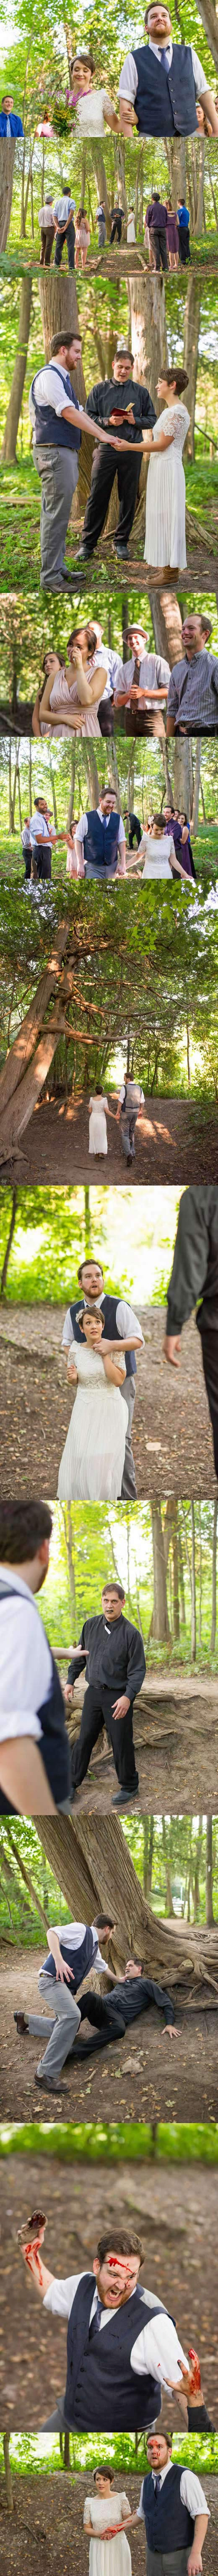 funny-wedding-session-zombie-attack